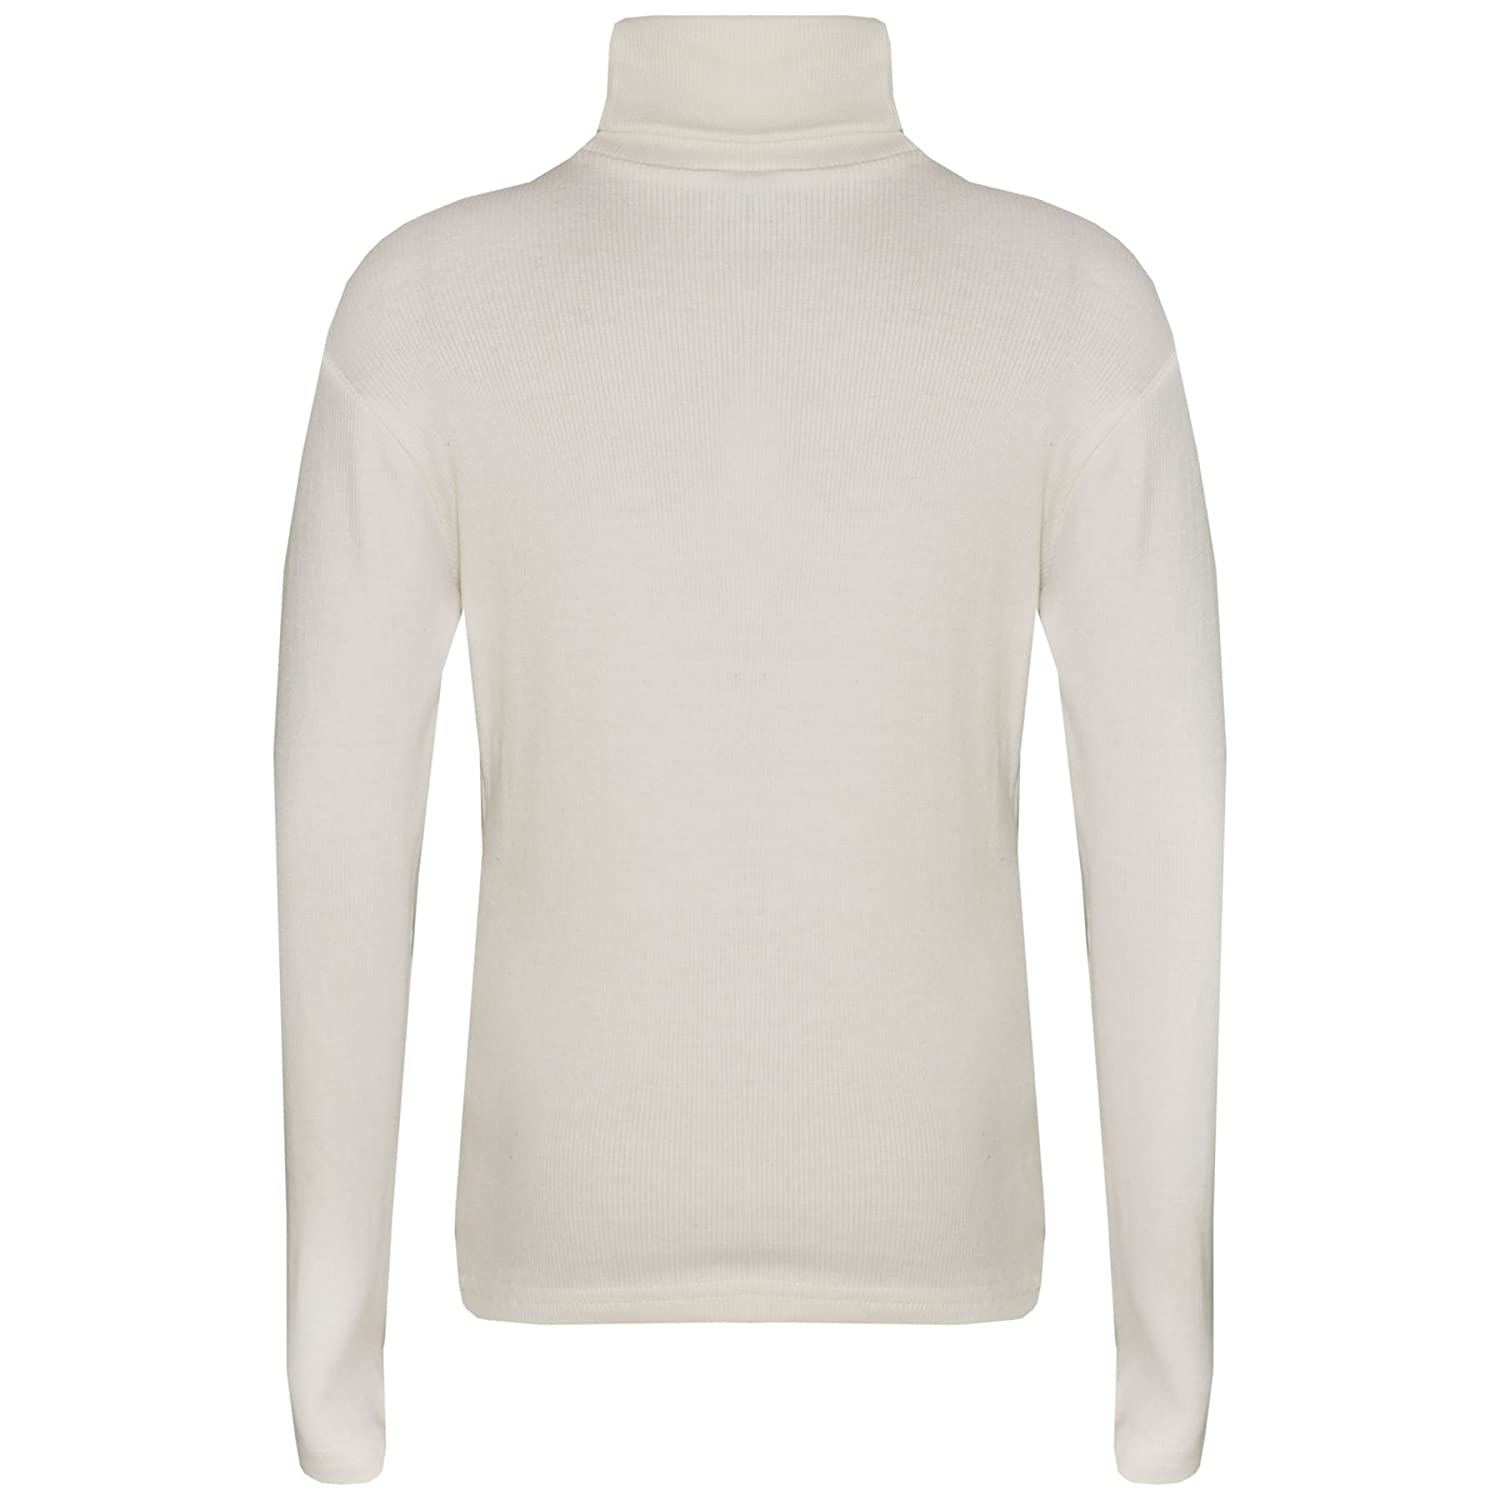 A2Z 4 Kids/® Kids Girls Polo Neck T Shirt Top Designers Thick Cotton Turtleneck Fashion Long Sleeves Tops New Age 2 3 4 5 6 7 8 9 10 11 12 13 Years